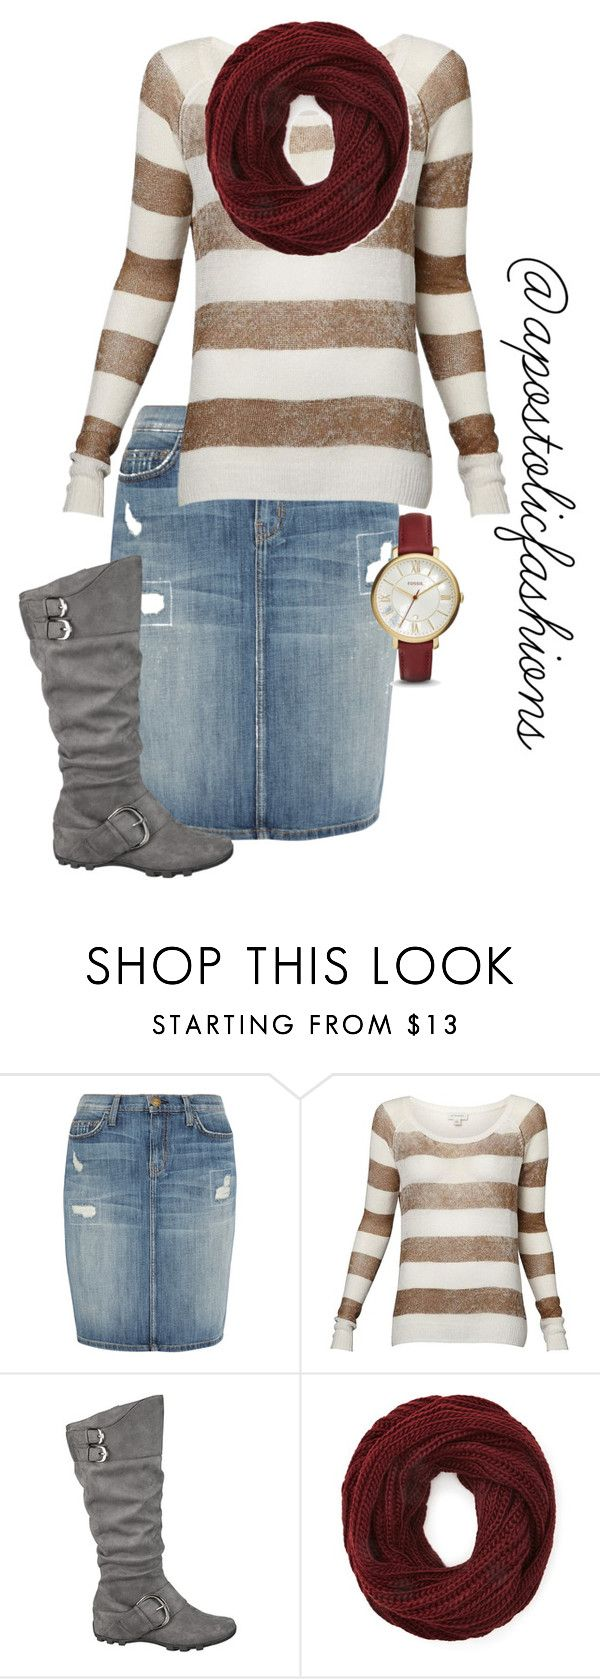 """""""Apostolic Fashions #1256"""" by apostolicfashions on Polyvore featuring Current/Elliott, Witchery, maurices, Forever 21 and FOSSIL"""